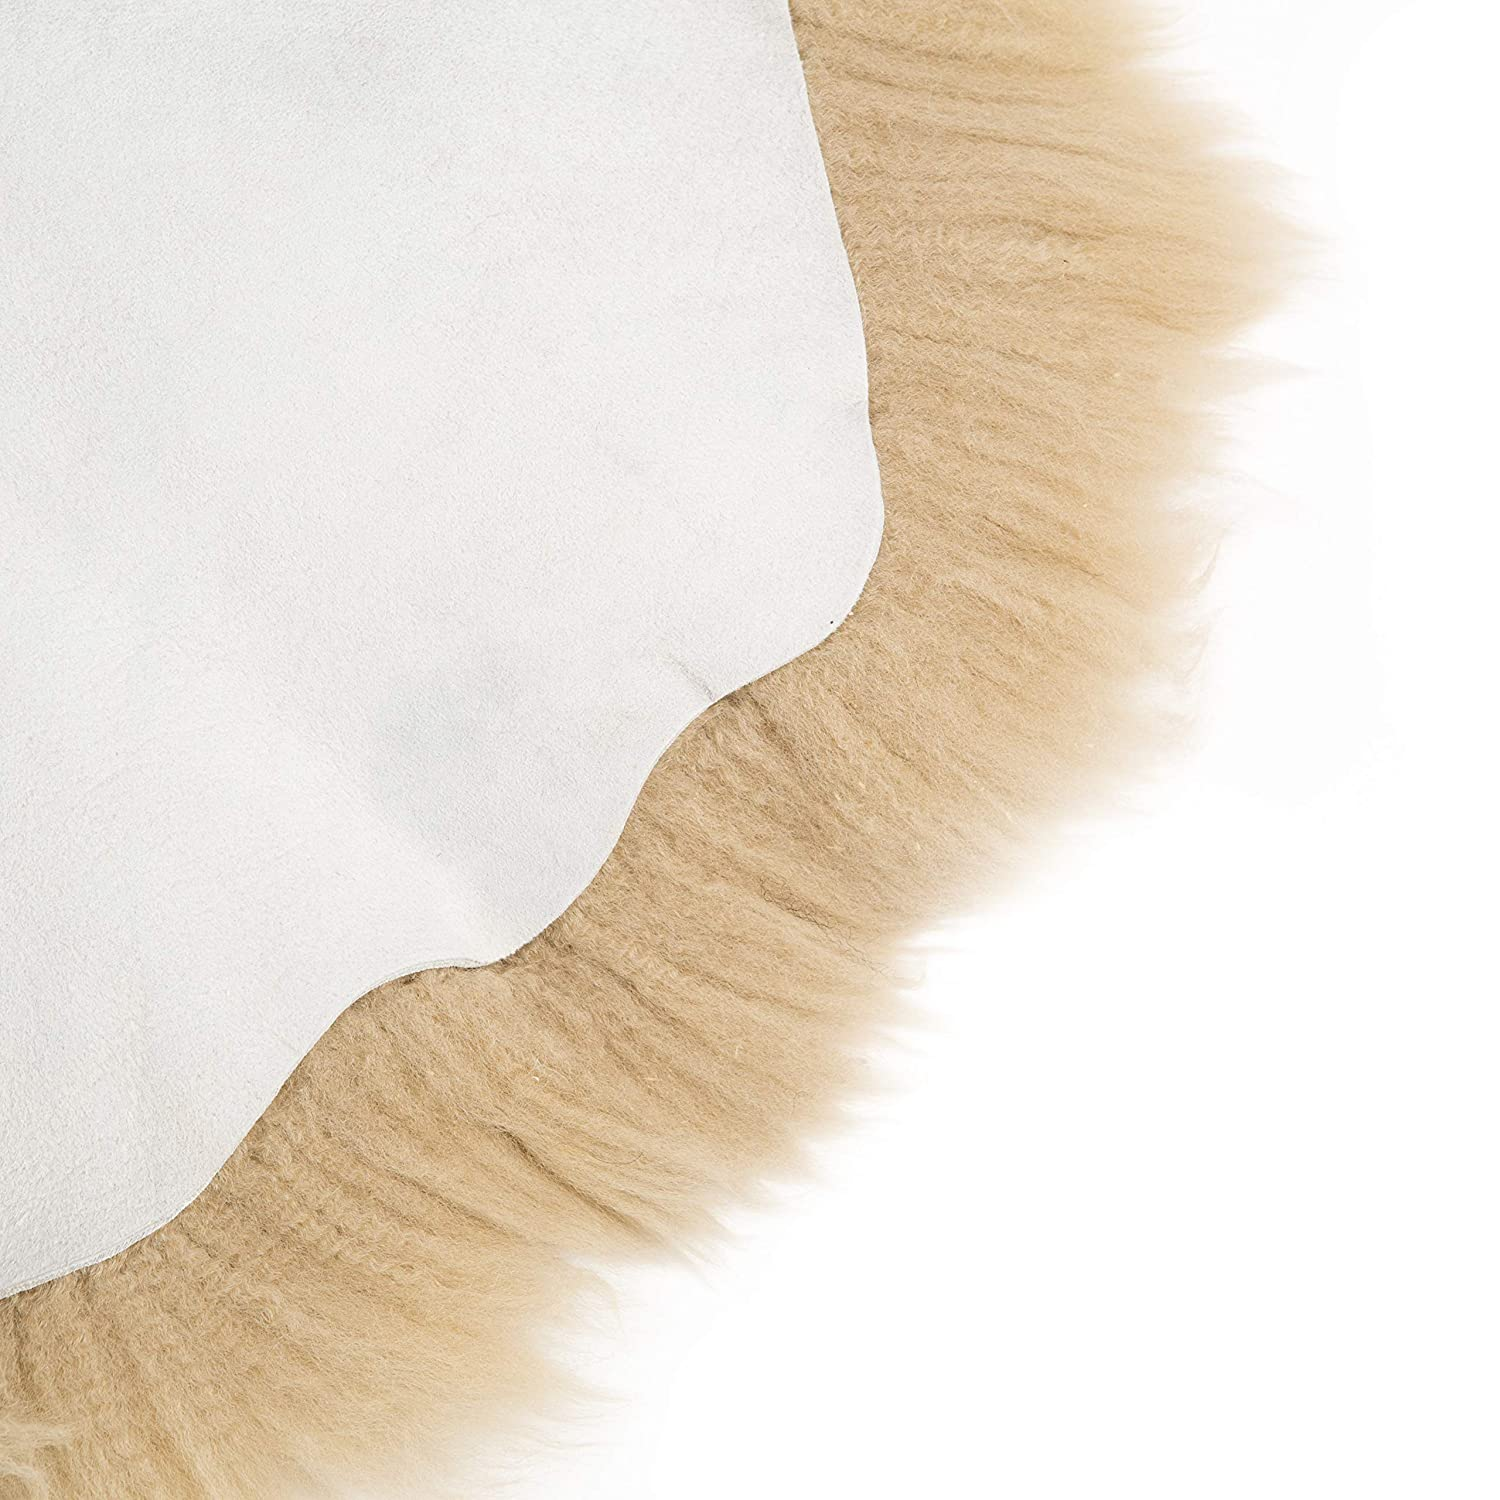 Amazinggirl Sheepskin Rug in the Box Ready To Go 100/% Natural Genuine Leather Extra Thick Wool Carpet Soft Silky Fleece Chair Cover Seat Pad for Bedroom Sofa Floor Fireplace